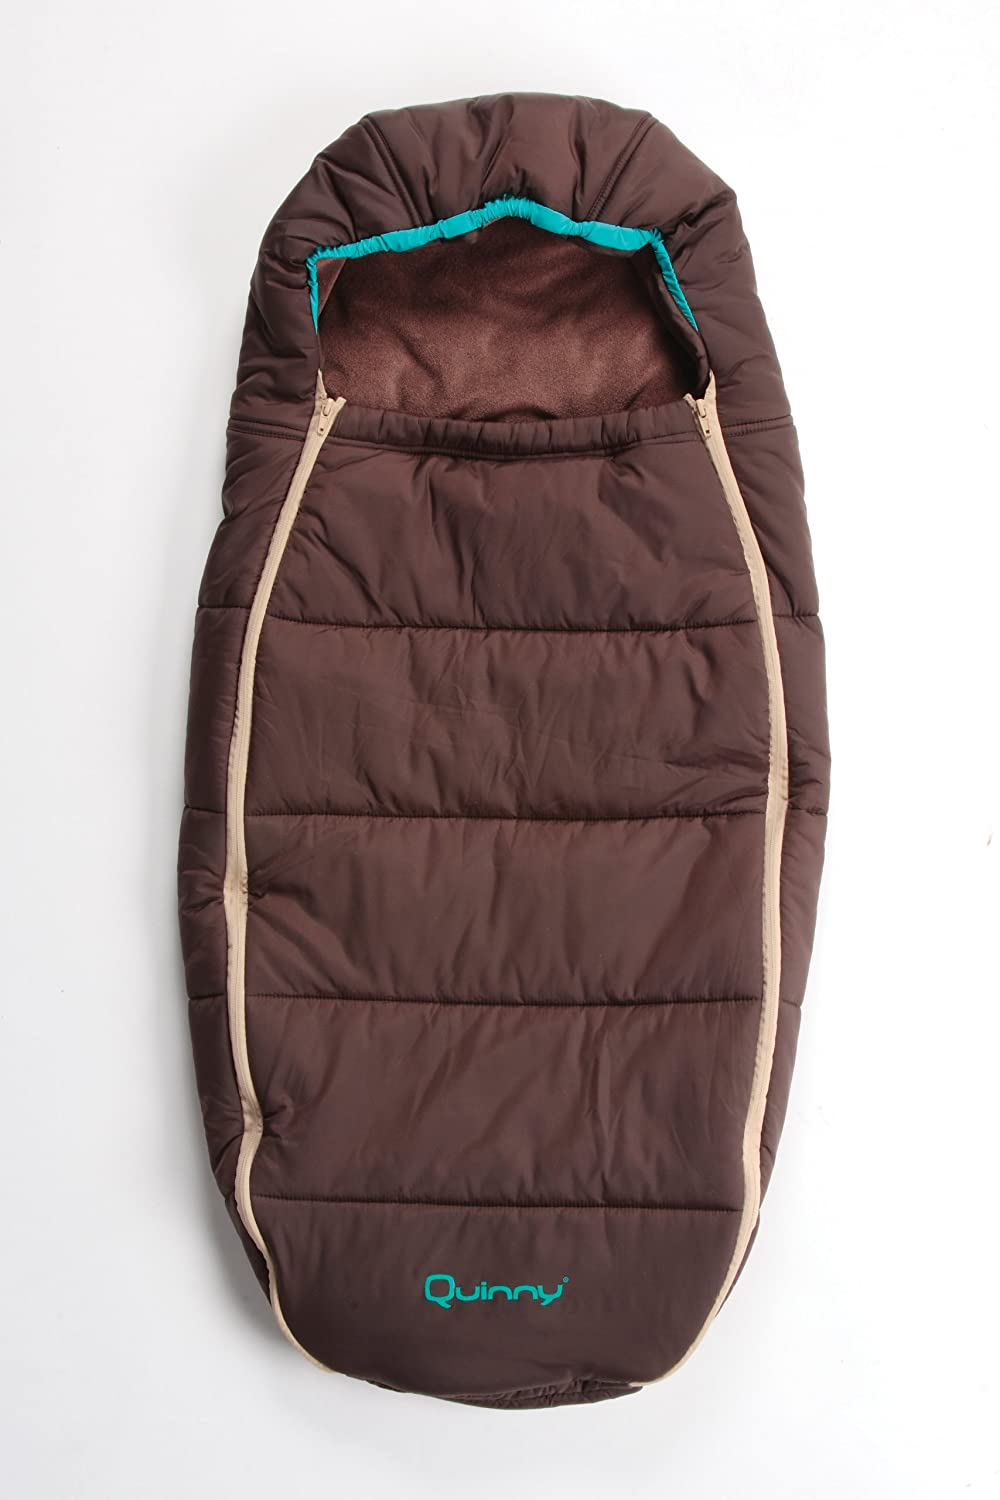 Foot muff infant baby sleeping bag to fit QUINNY strollers warm winter blanket